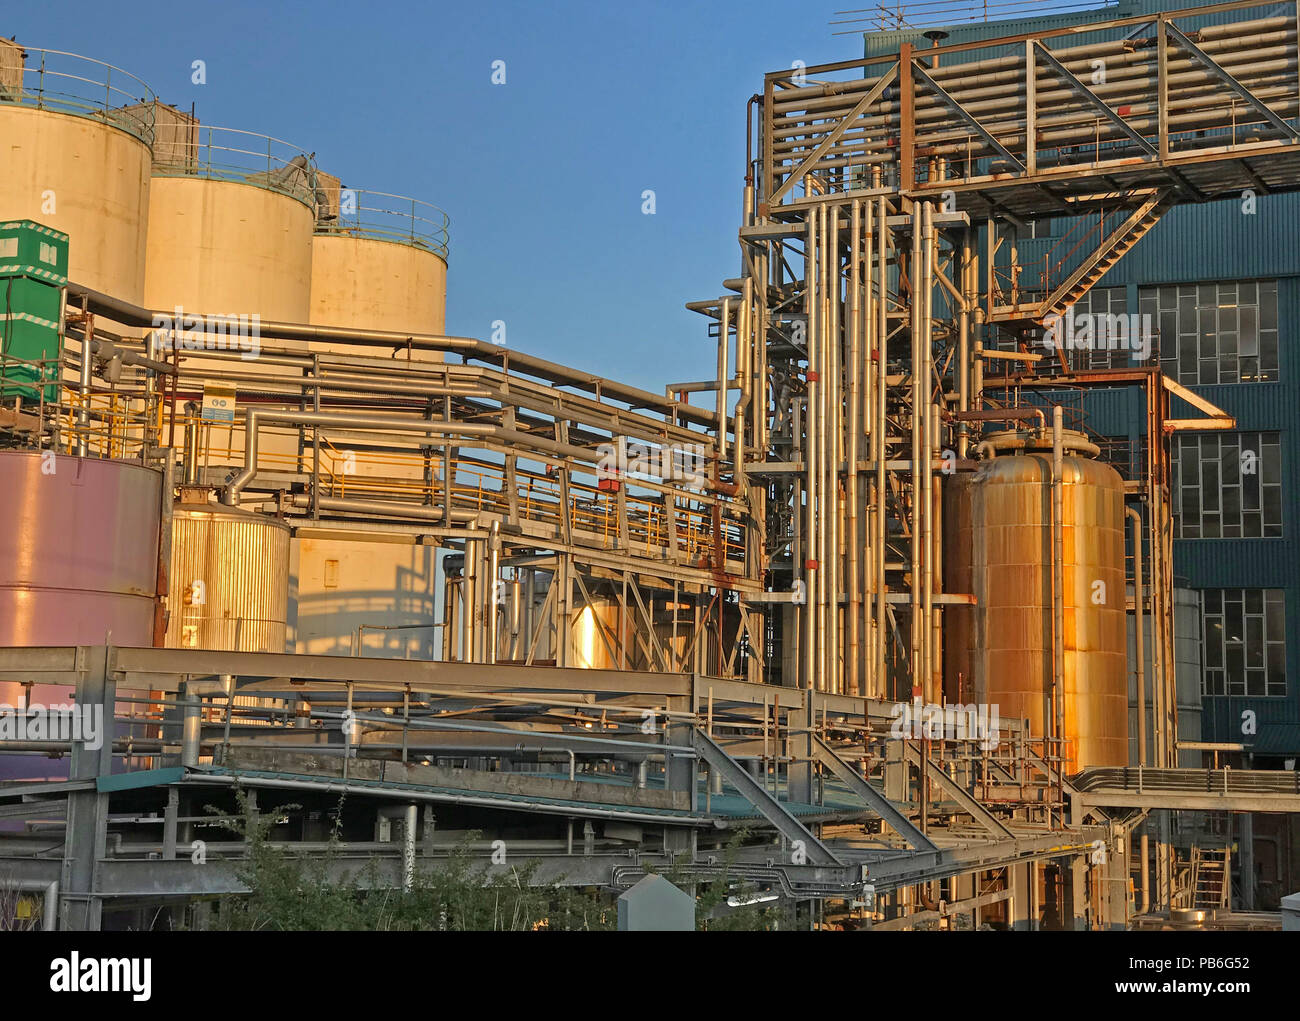 Chemical factory pipework, Lever Brothers Ltd, Warrington Bank Quay, Cheshire, North West England, UK - Stock Image